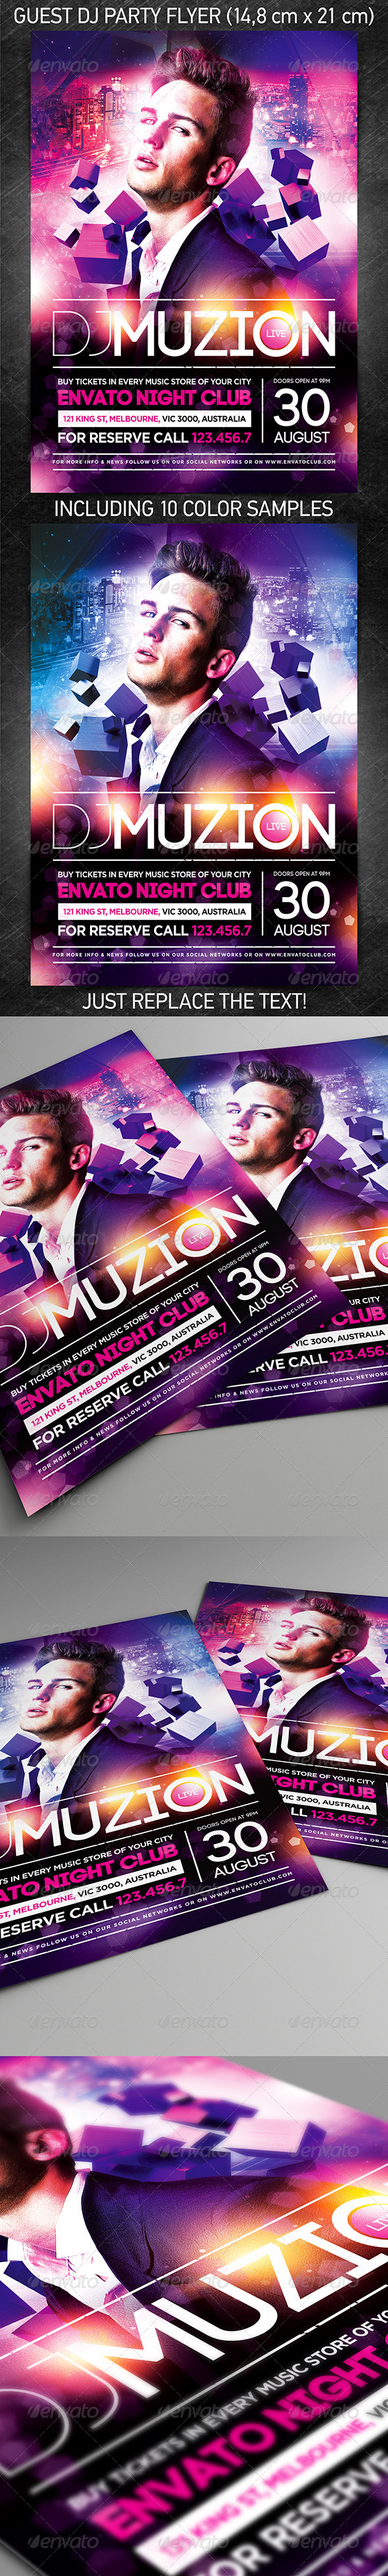 GraphicRiver Guest DJ party flyer vol.4 8016241